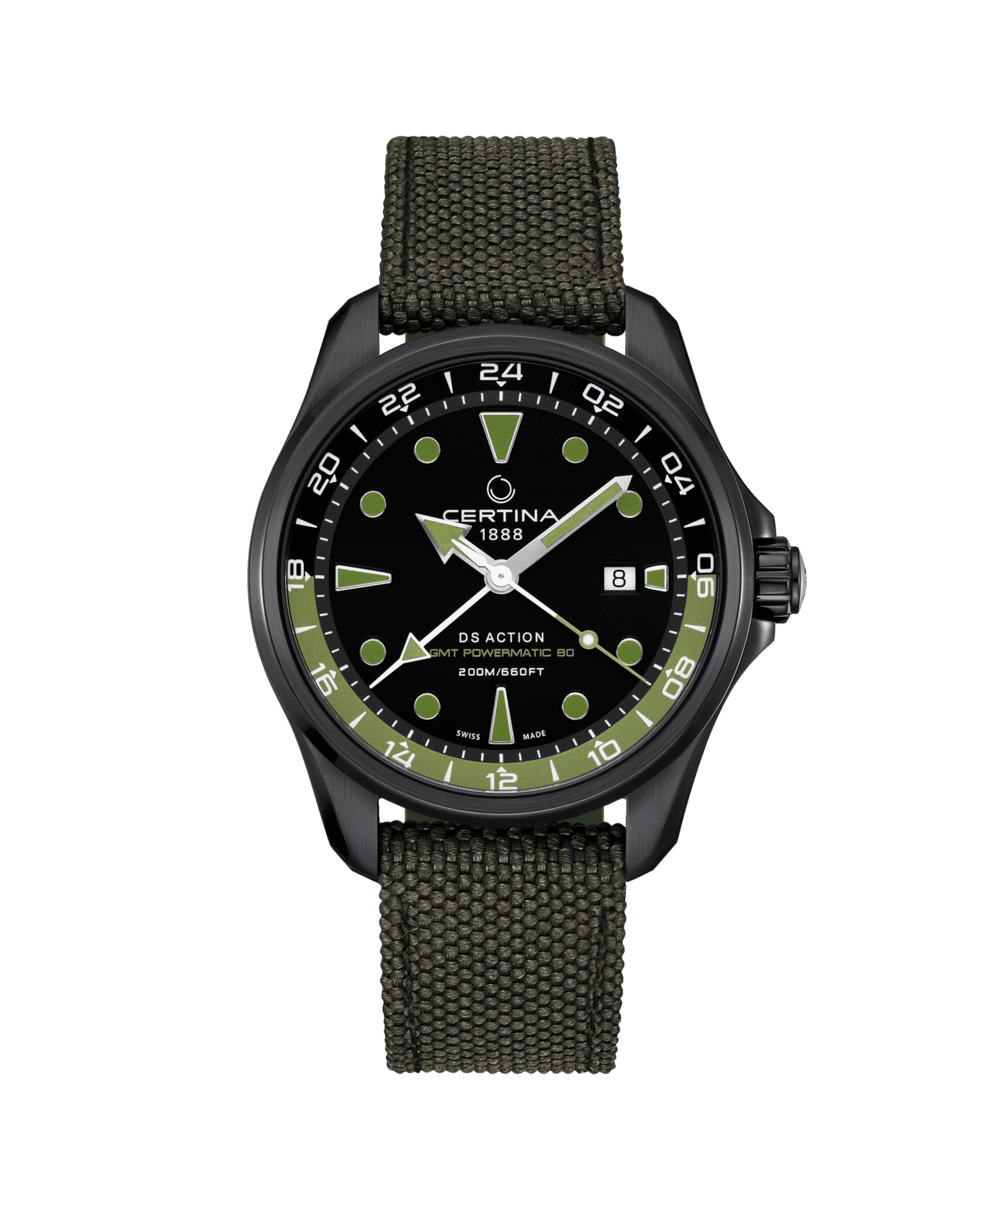 Reloj Certina DS Action GMT Powermatic 80